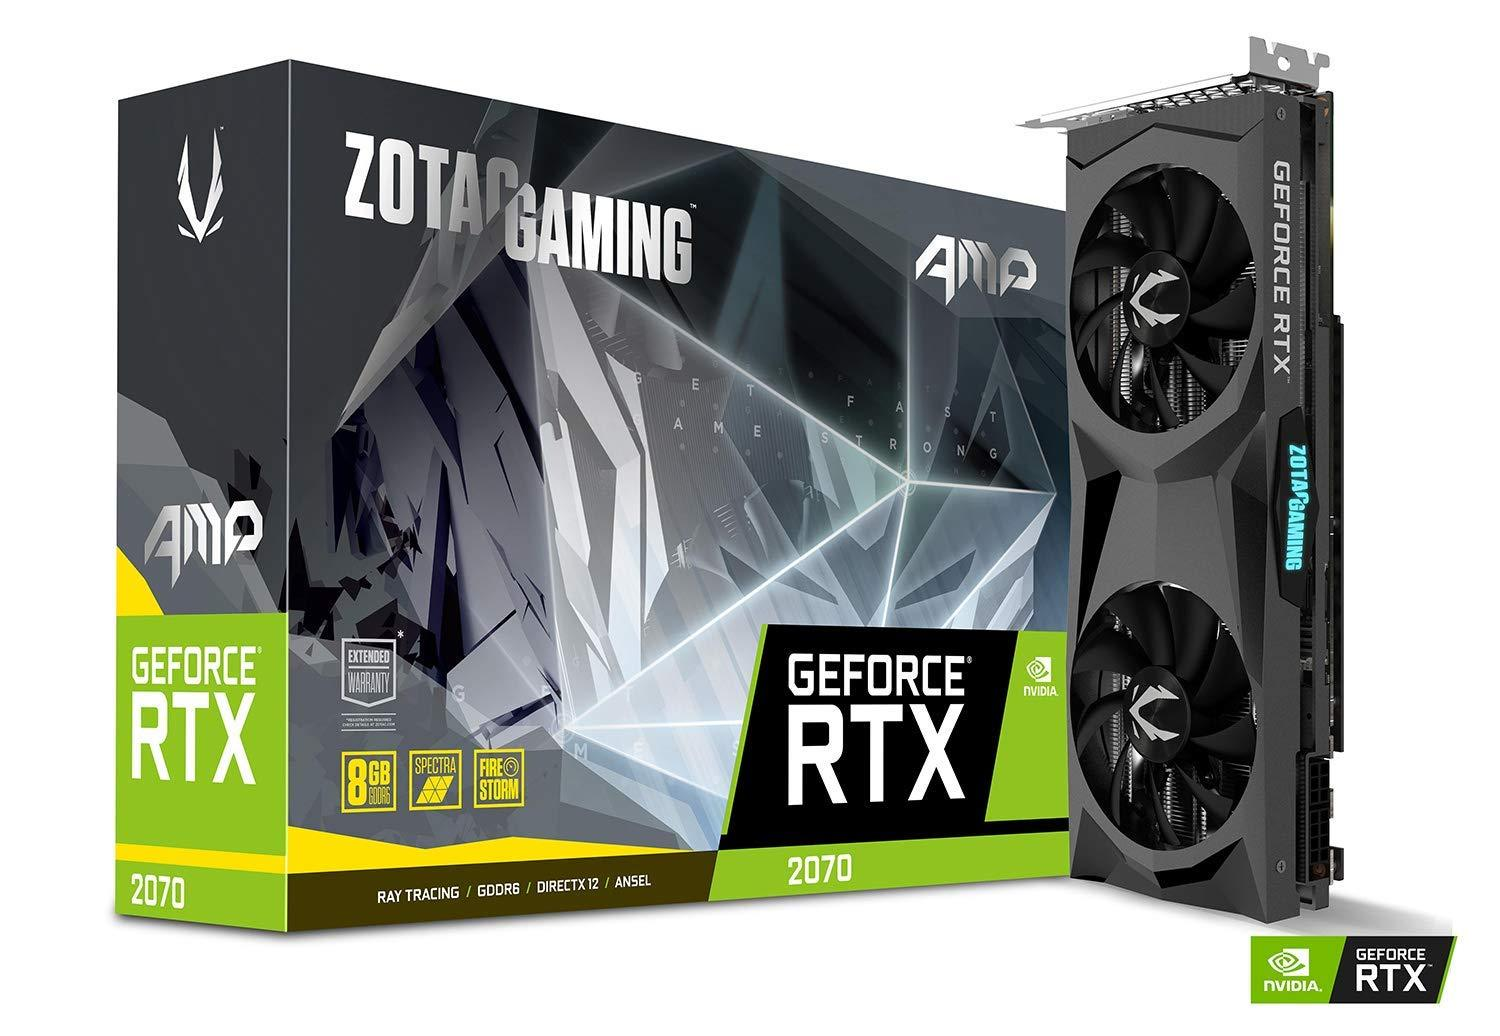 Zotac Gaming GeForce RTX 2070 AMP Edition 11GB GDDR6 PCI-E Gen 4x4 - Graphics Card